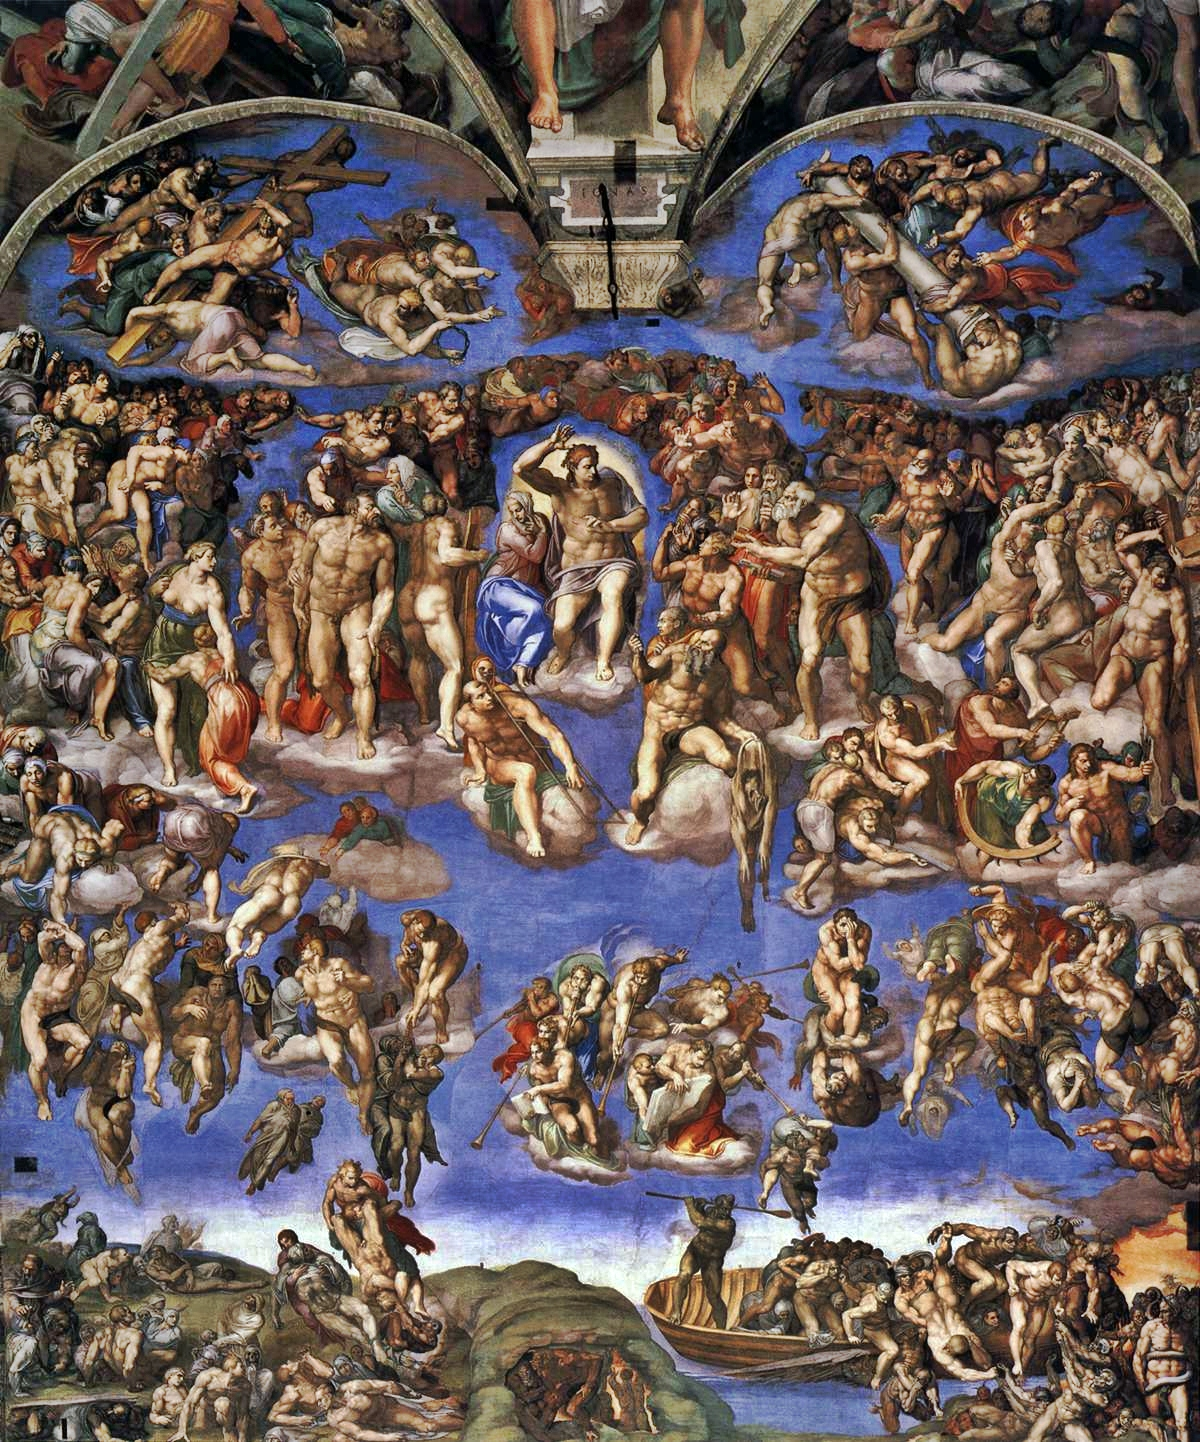 The Last Judgement by Michelangelo, Rome